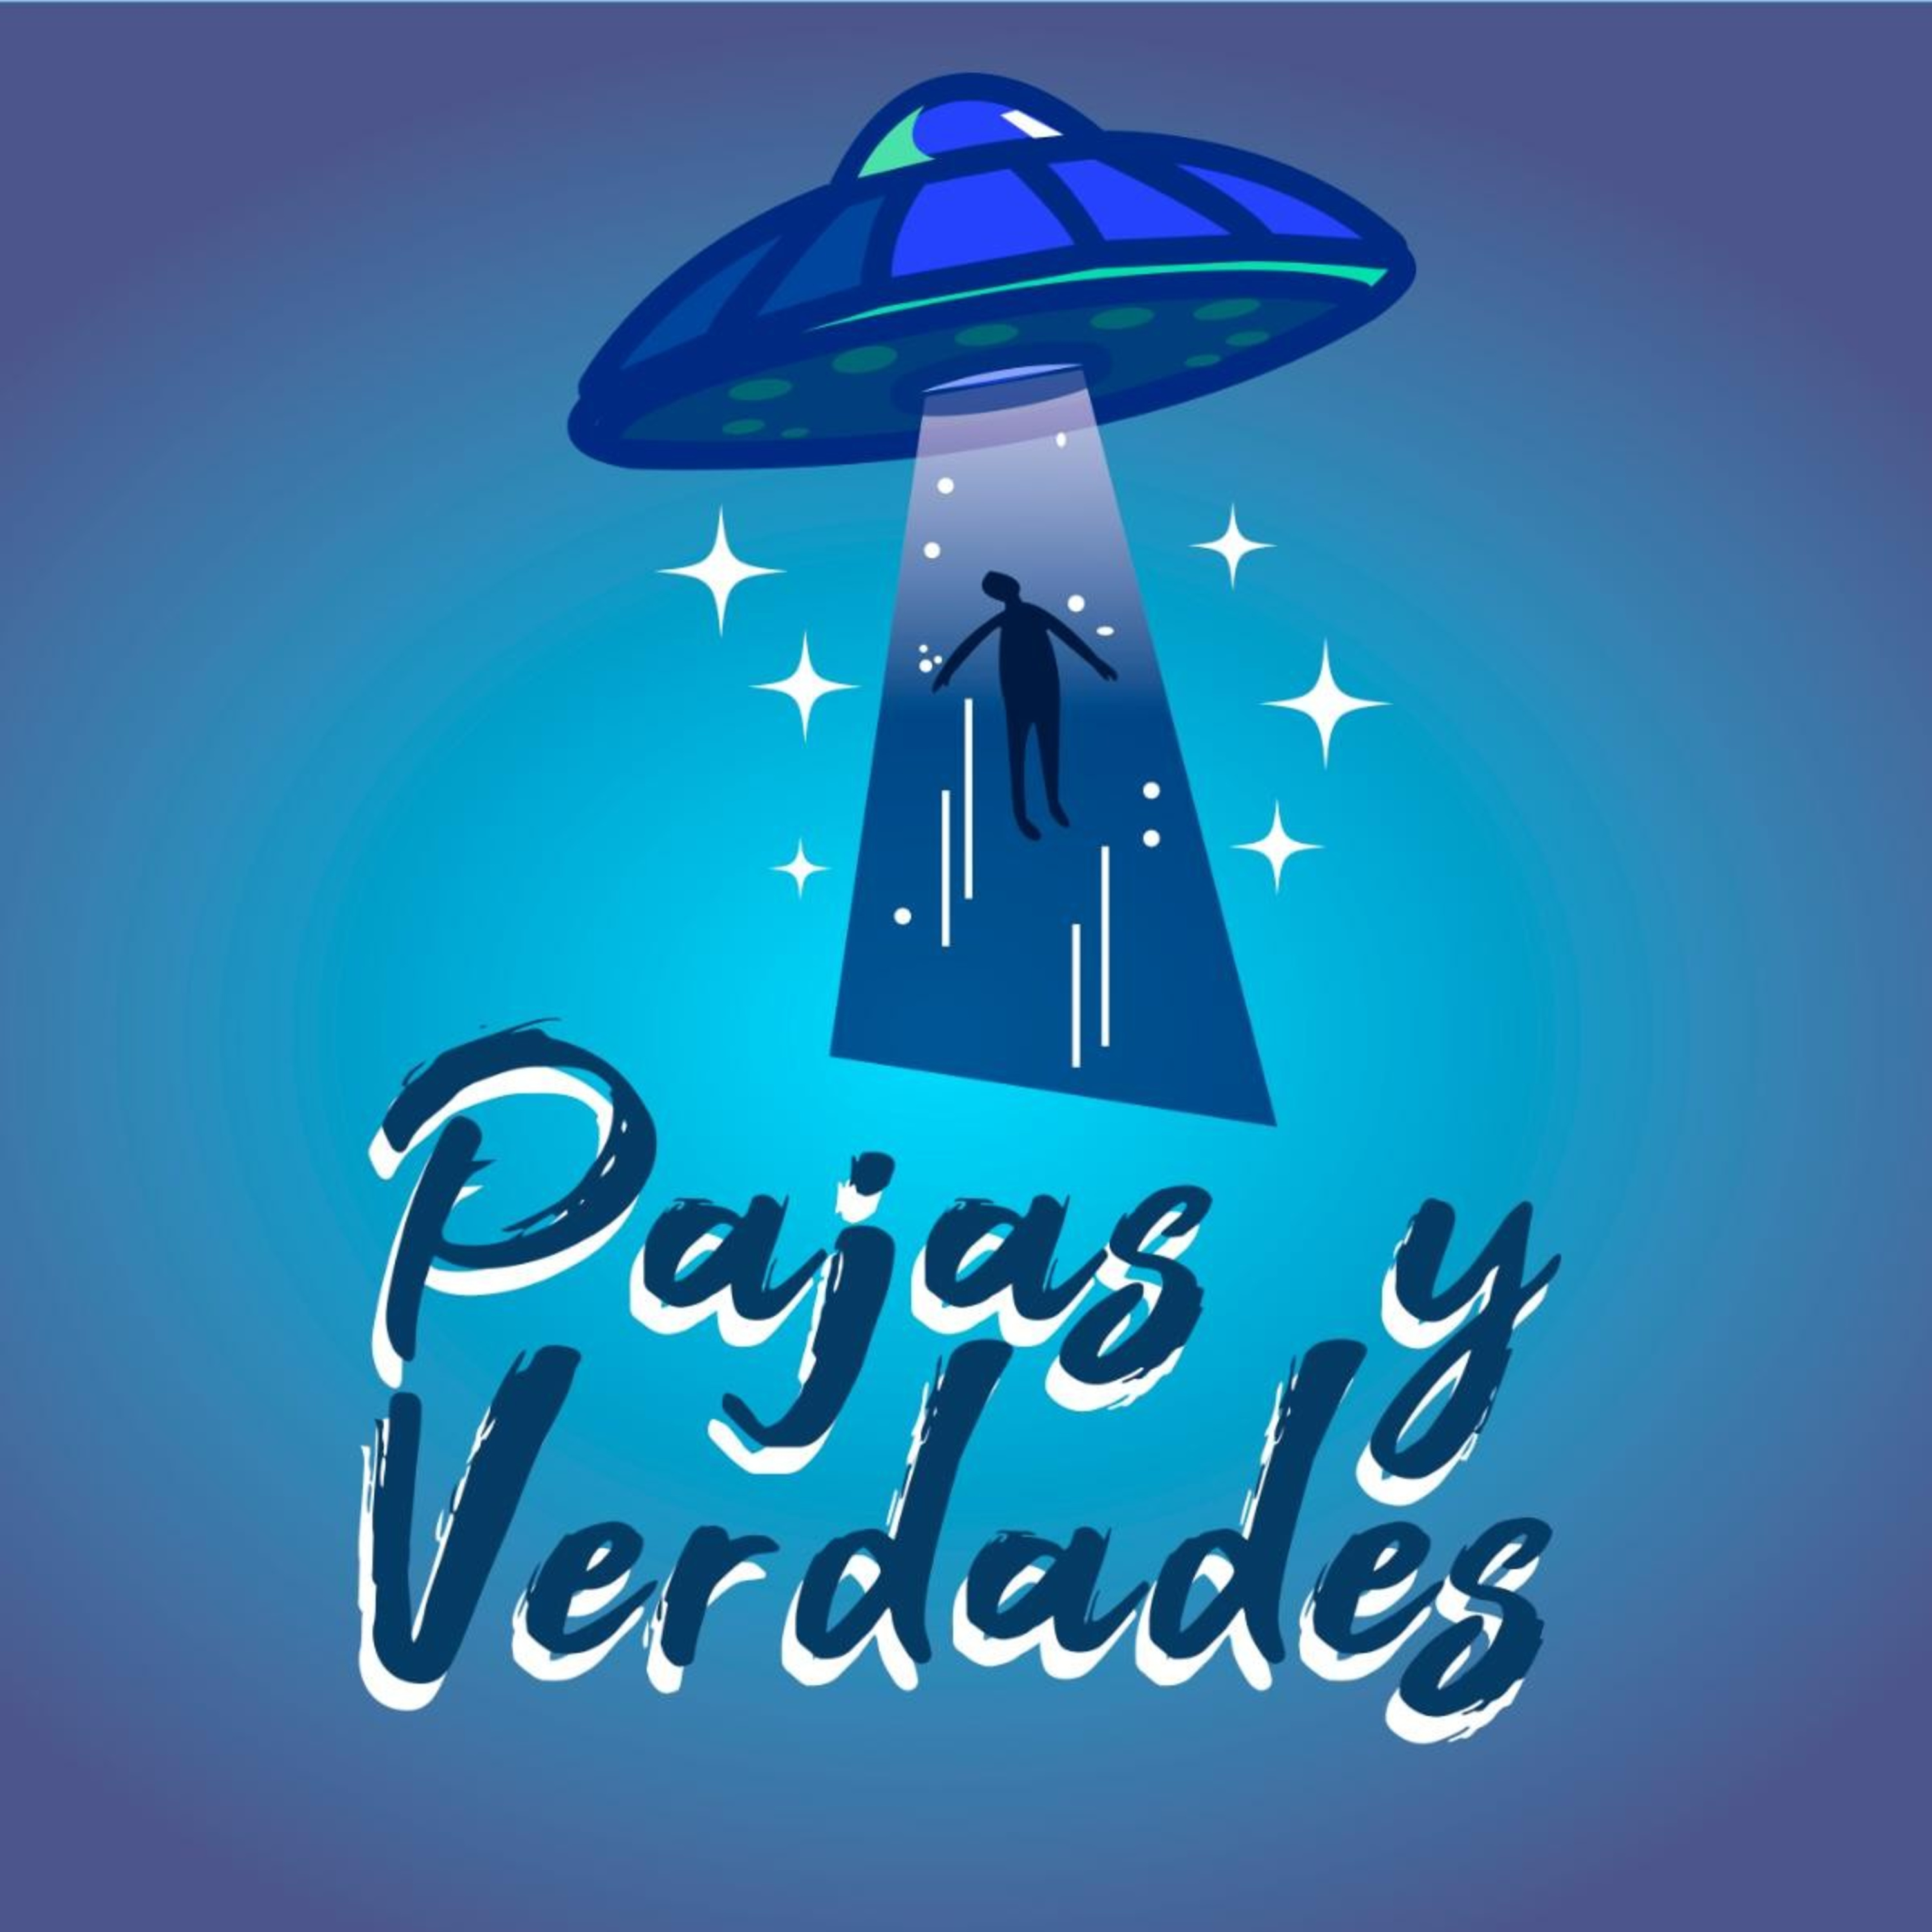 Pajas Youtube pajas y verdades • a podcast on anchor